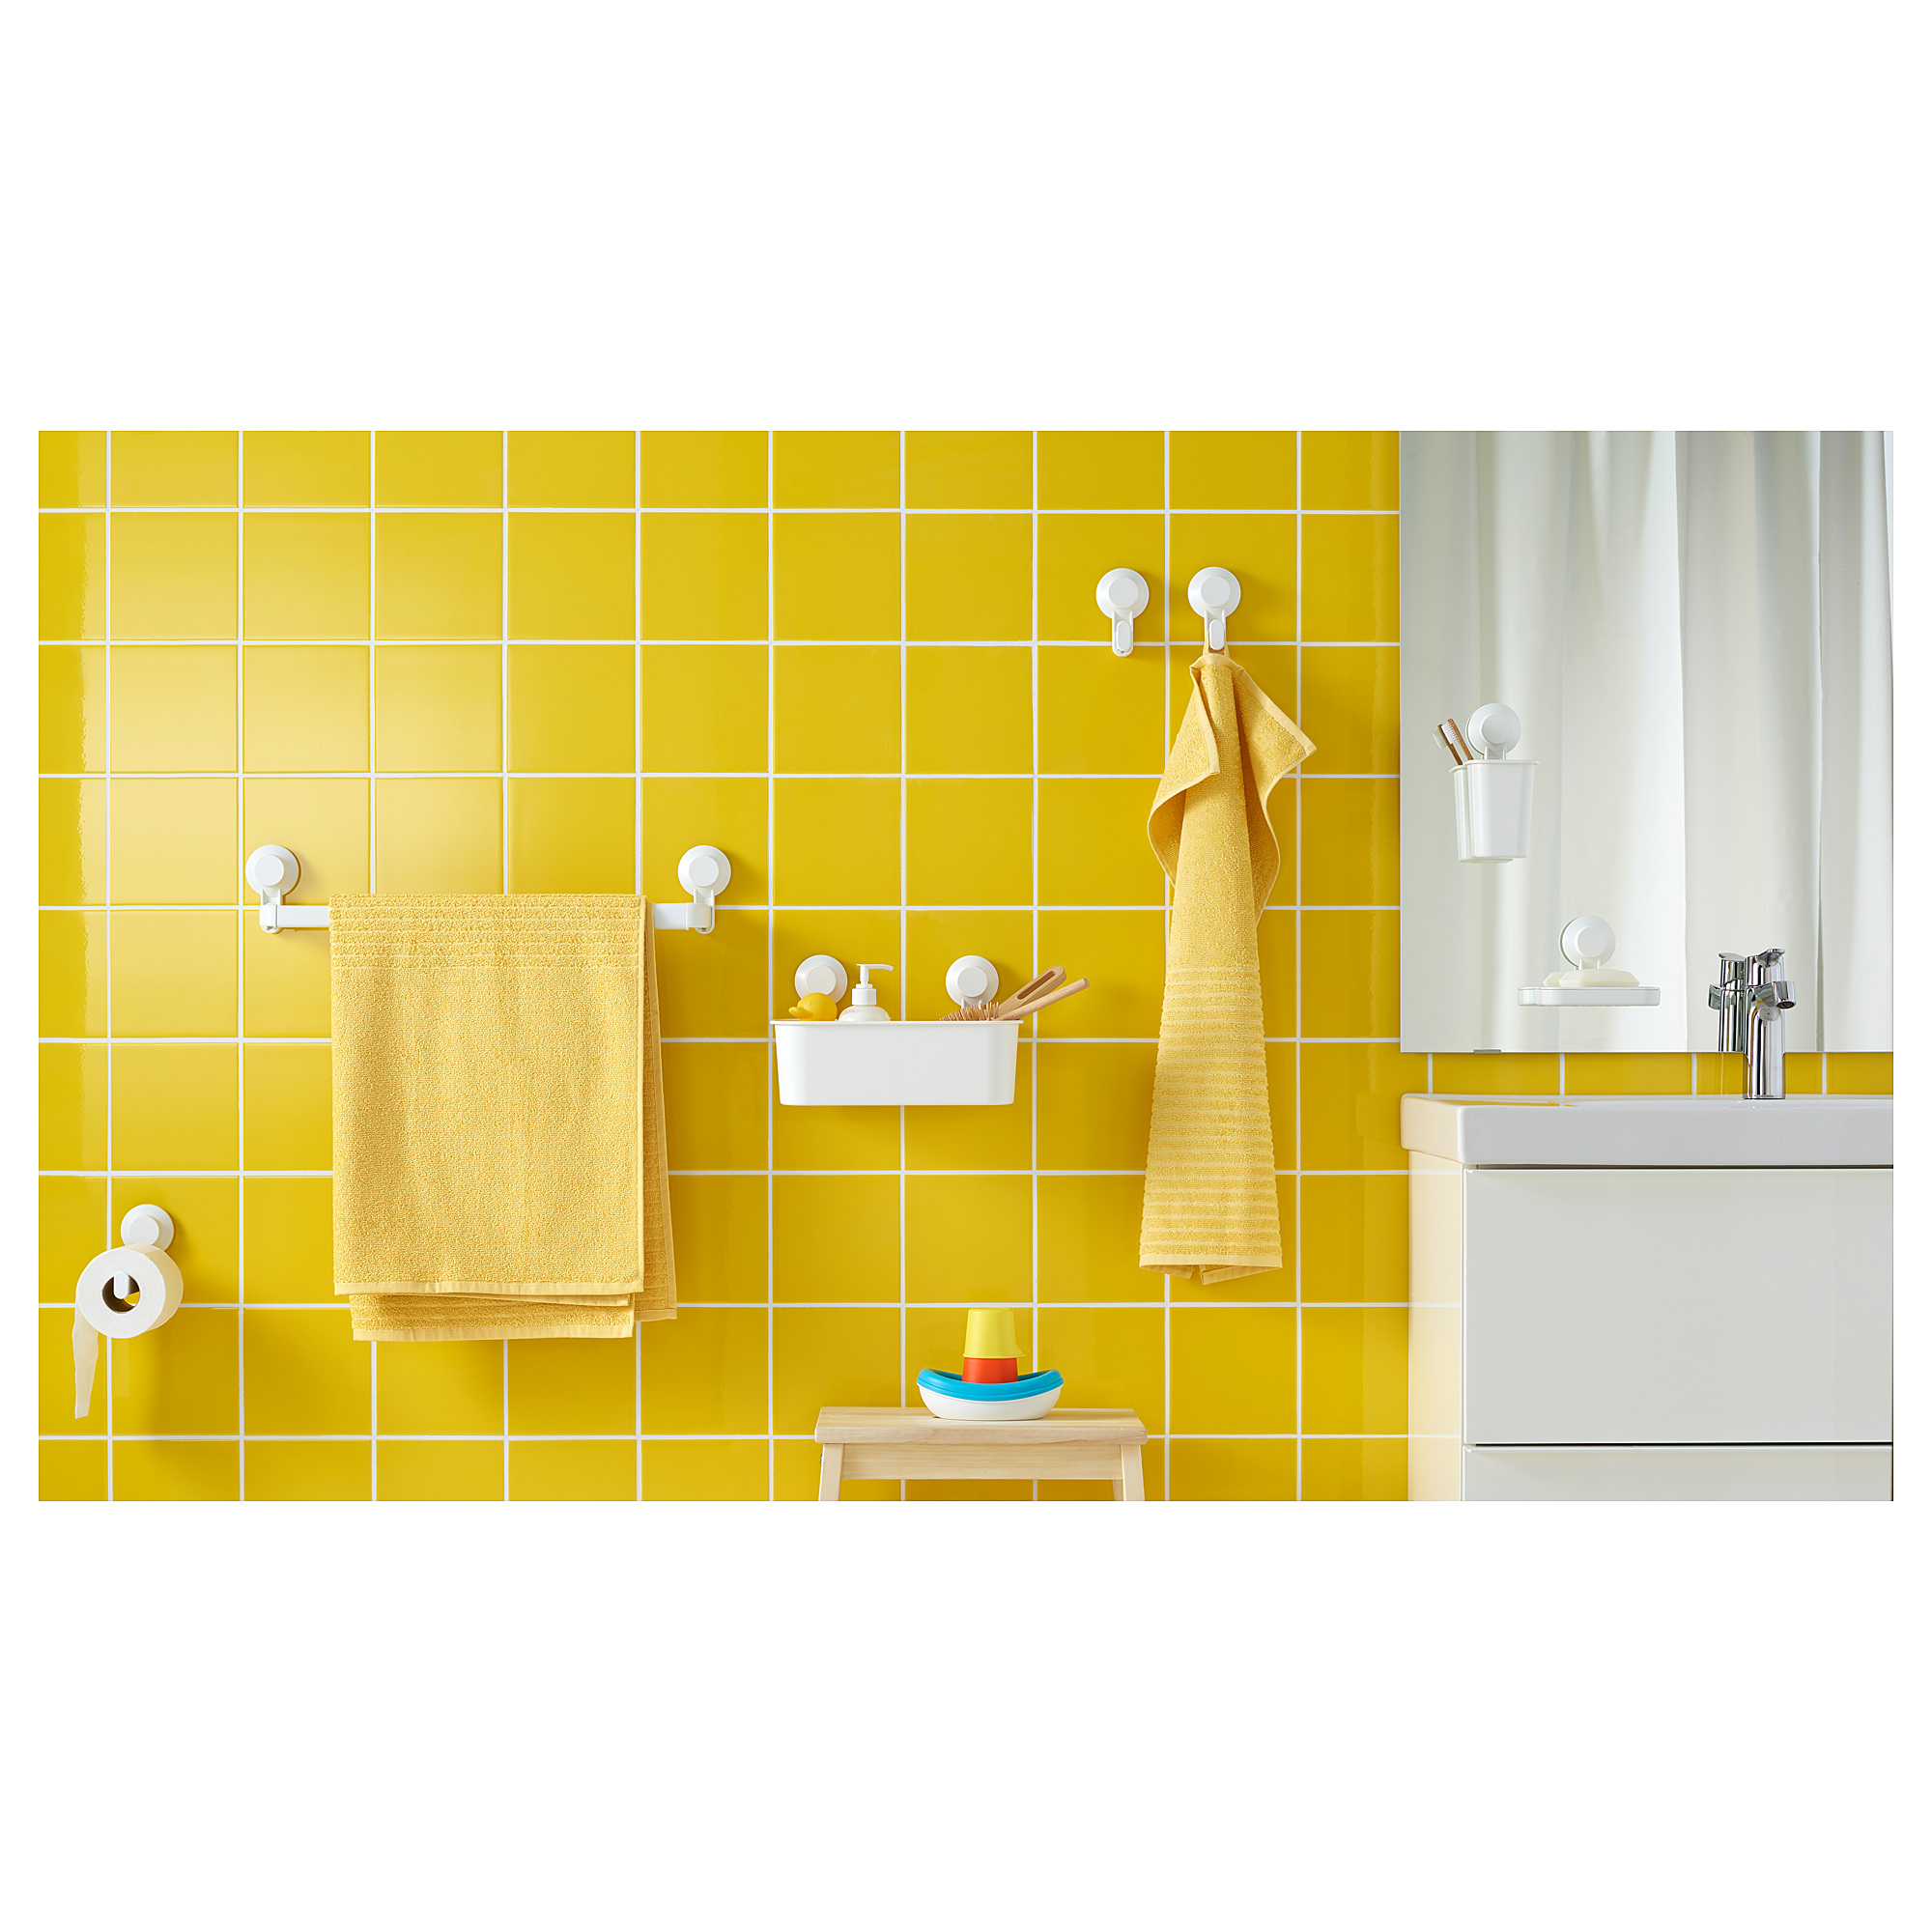 TISKEN towel rack with suction cup